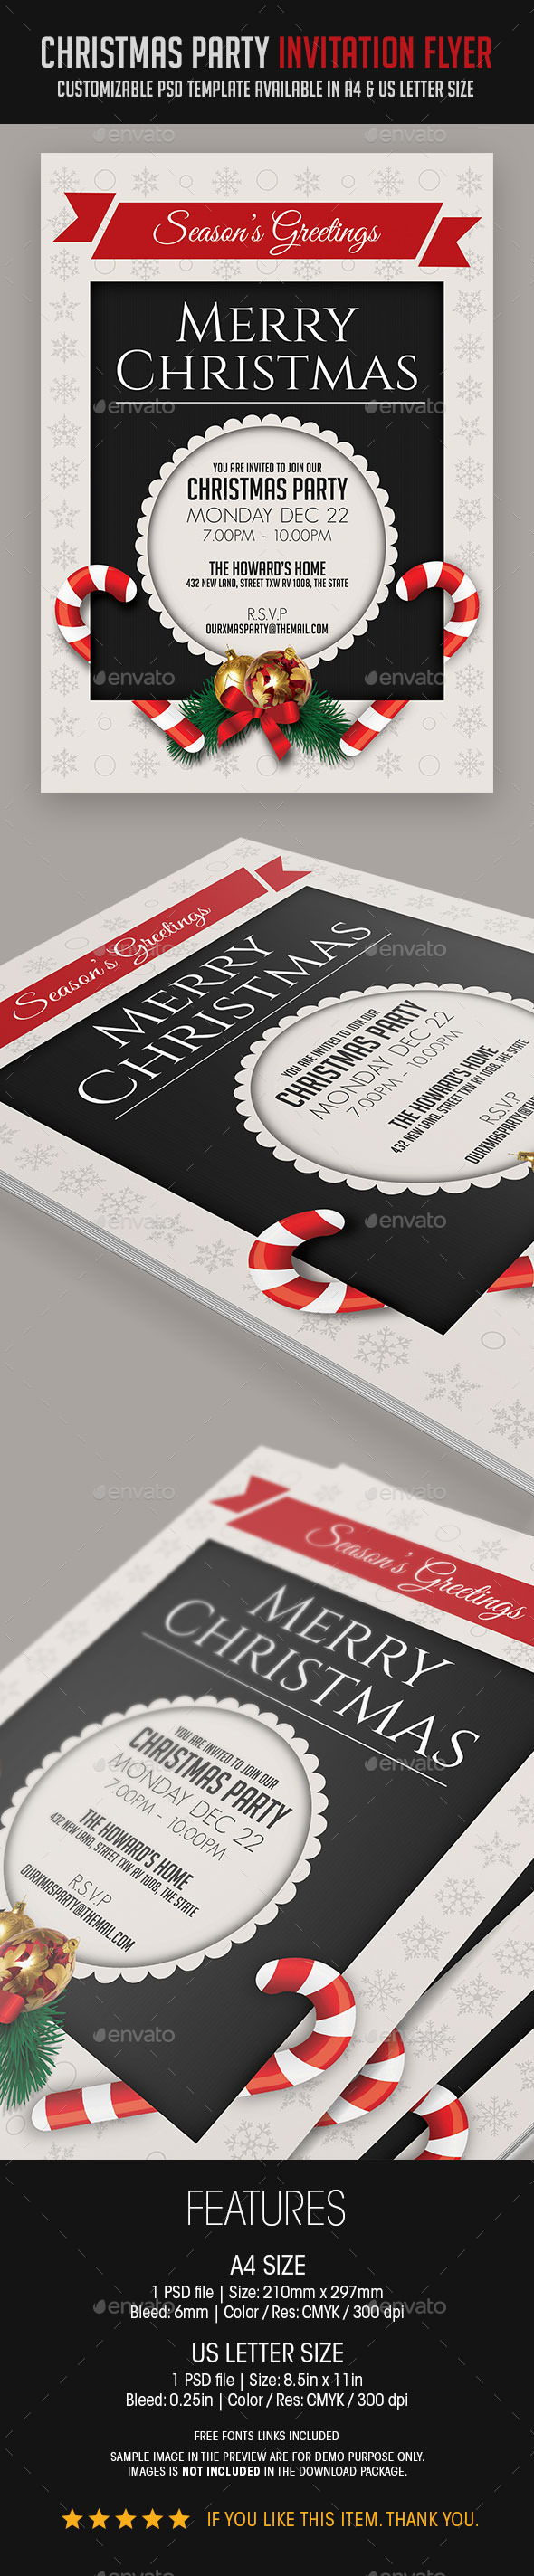 GraphicRiver Christmas Party Invitation Flyer 9376625